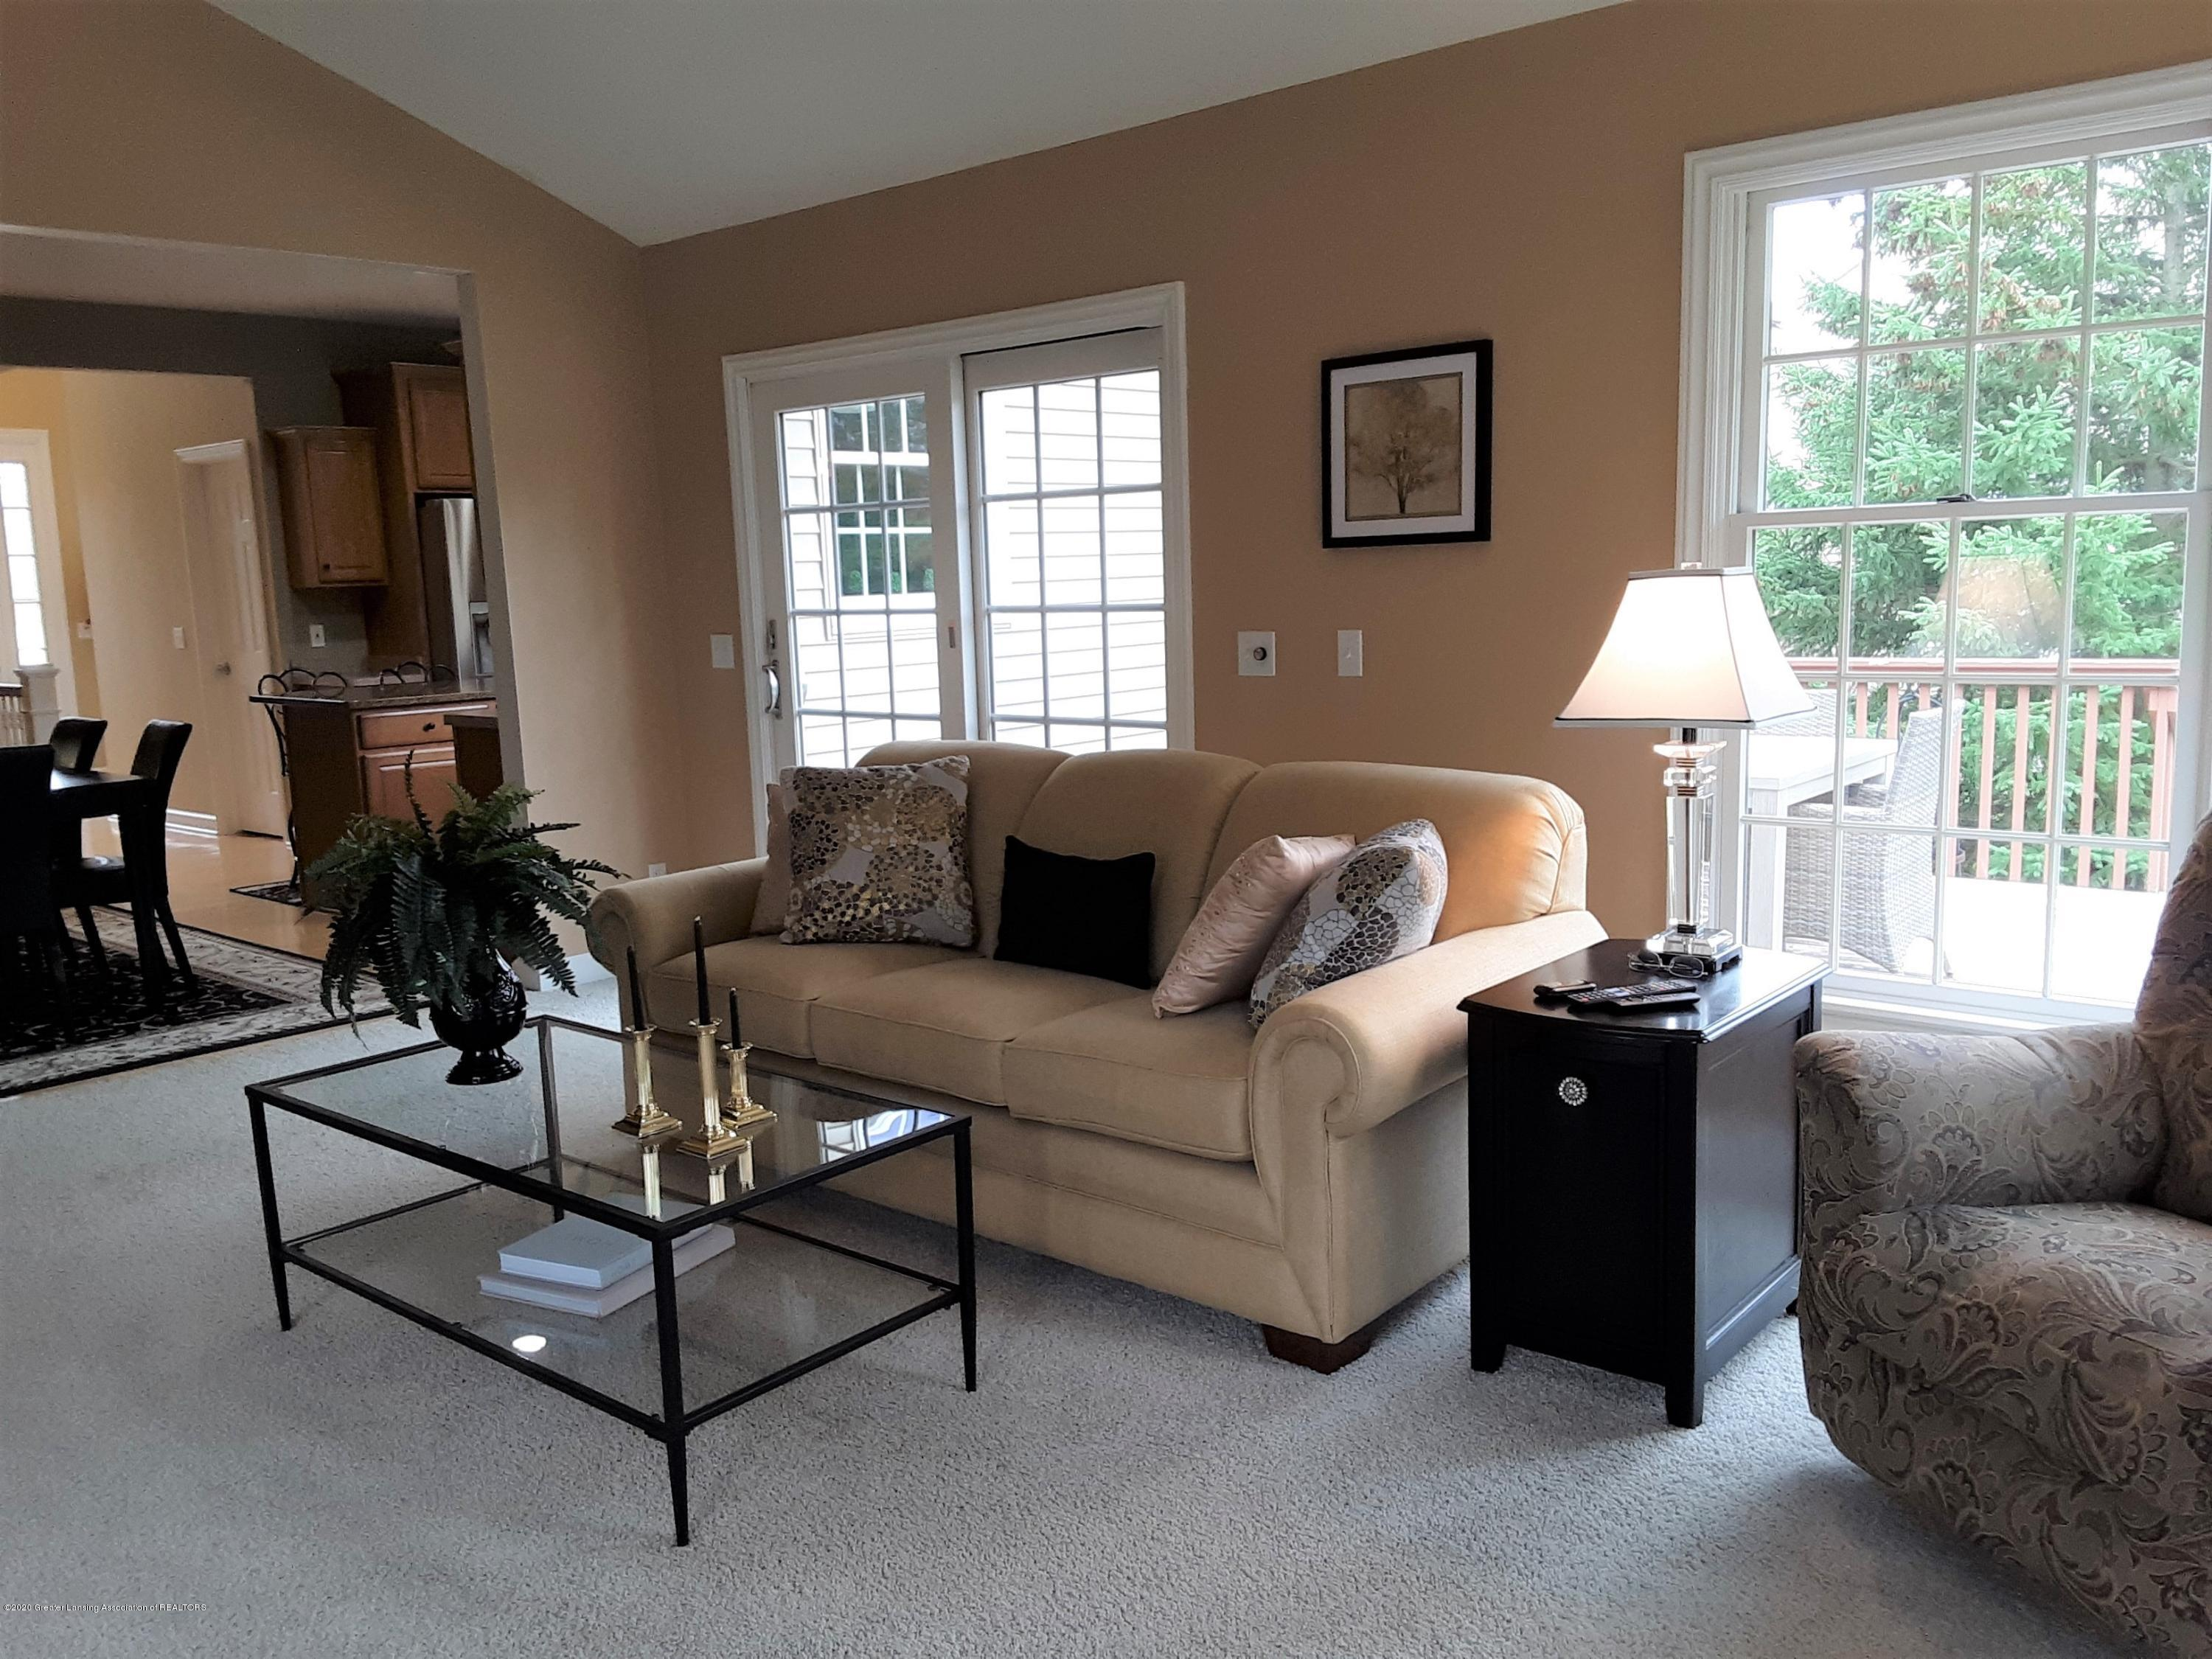 13142 Blaisdell Dr - 13. Great Room with deck access - 14